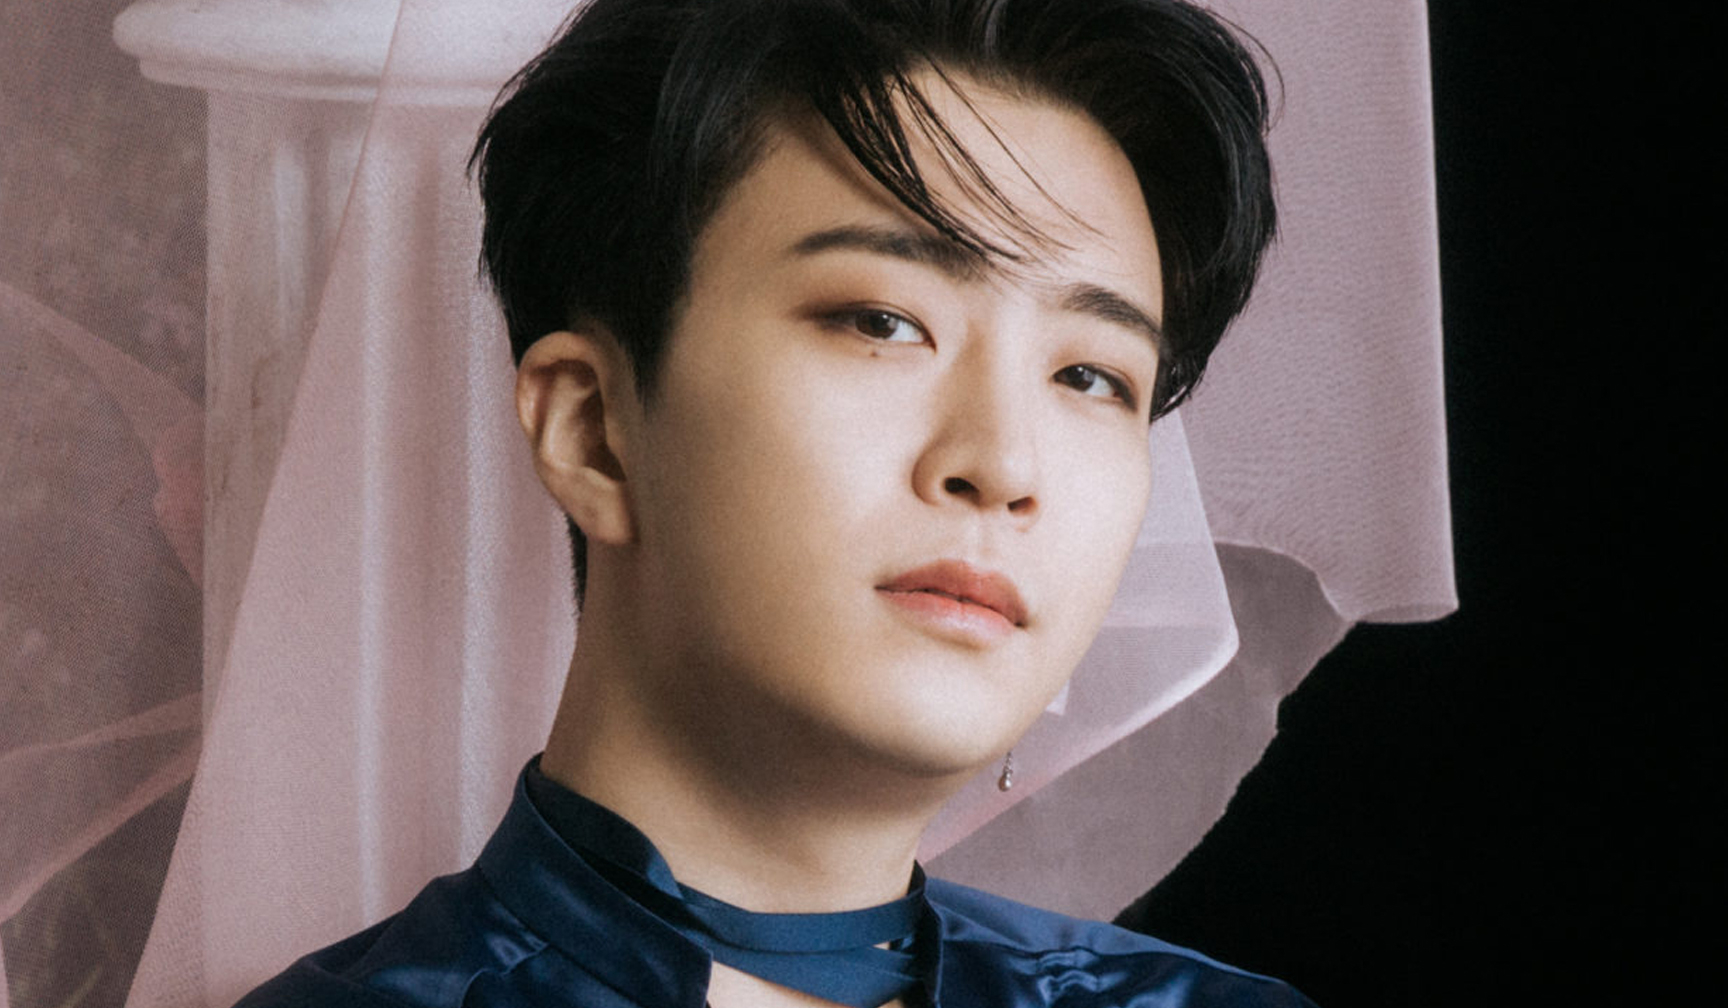 GOT7's Youngjae to release an OST for the drama 'So I Married an Anti-fan'